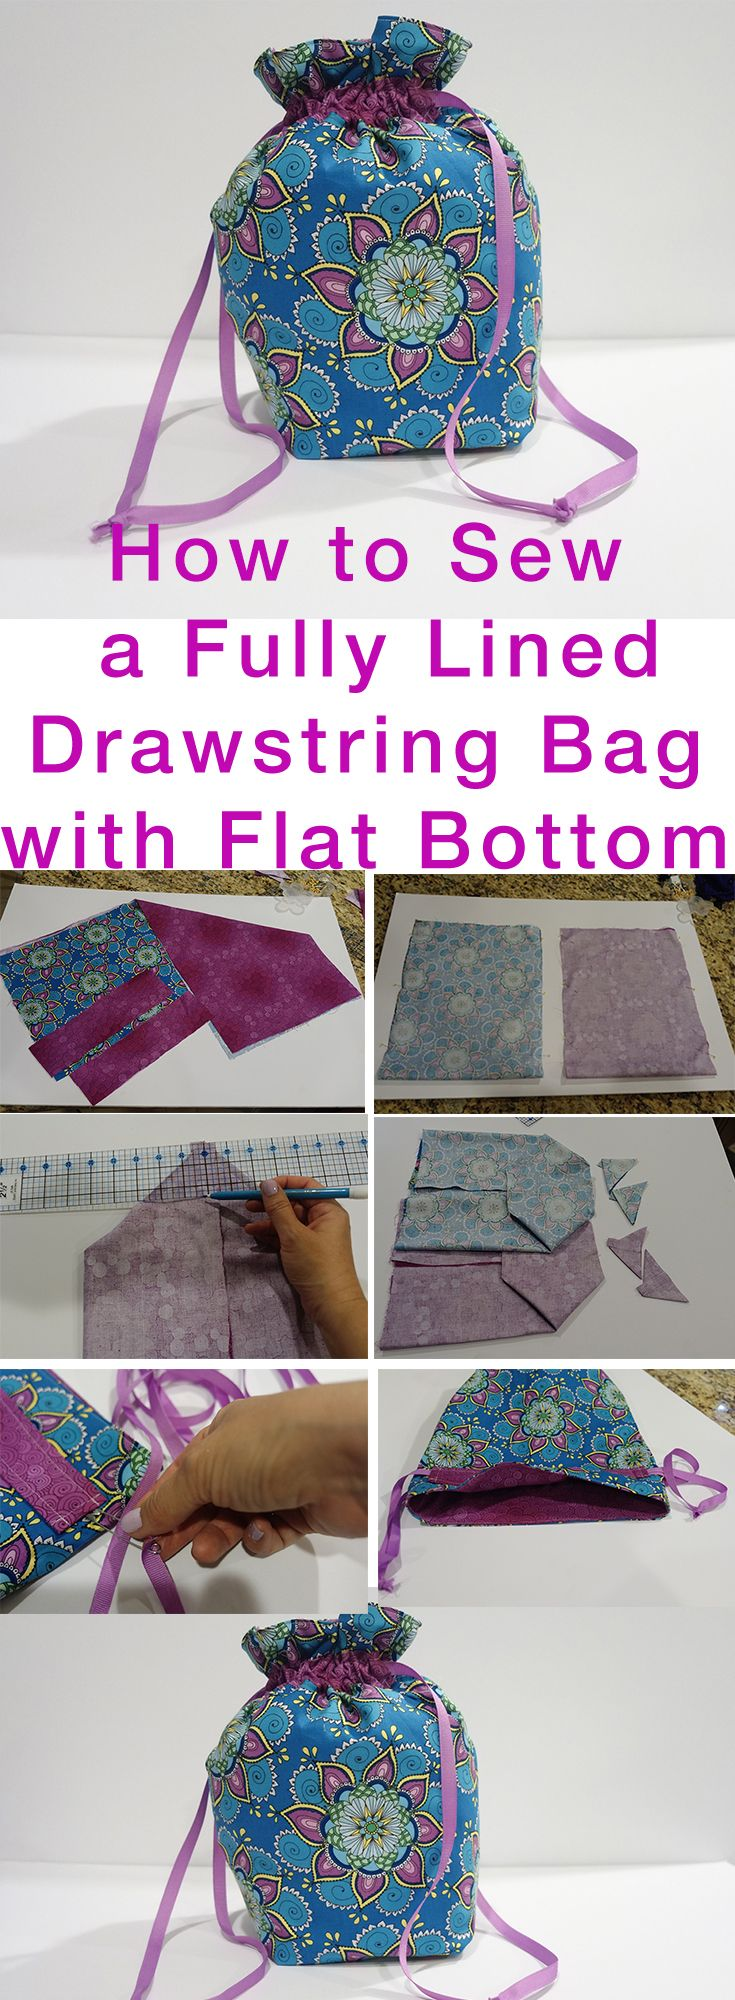 Jan 4 How to Sew Fully Lined, Flat Bottomed, Drawstring Bag FREE ...